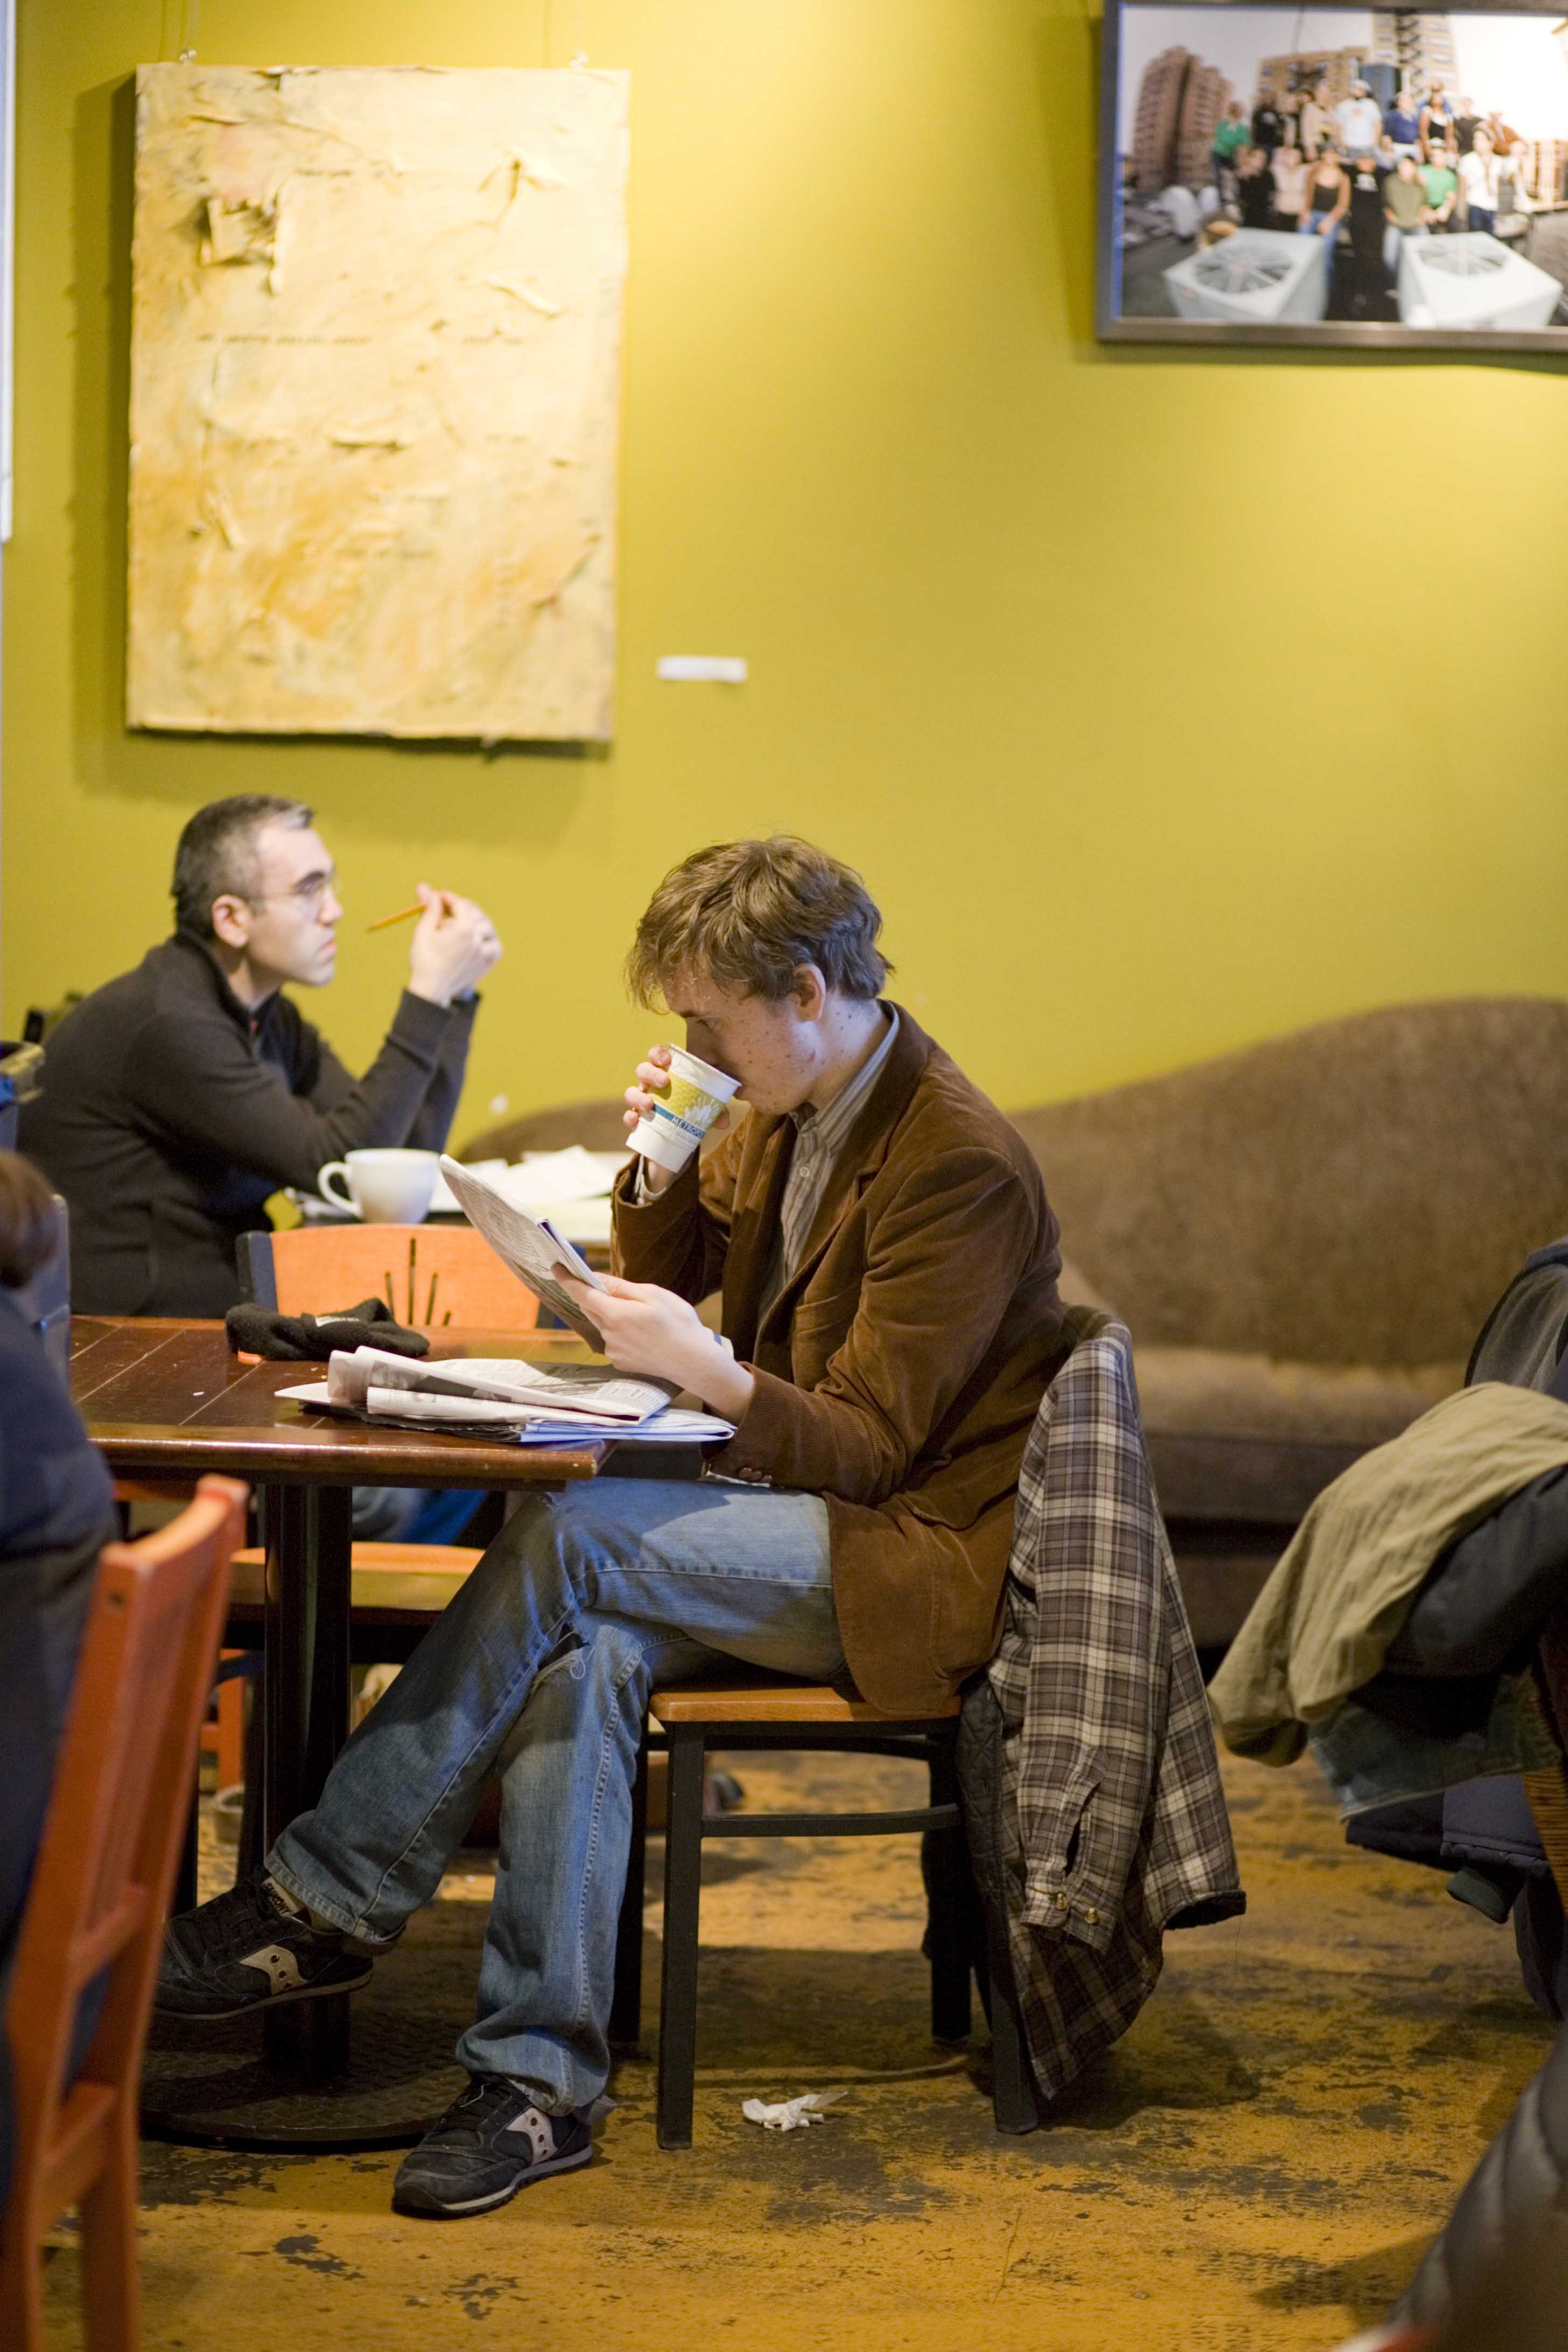 The Metropolis Coffee Company, which opened in 2003 at 1039 W. Granville Ave., is popular with Edgewater locals.